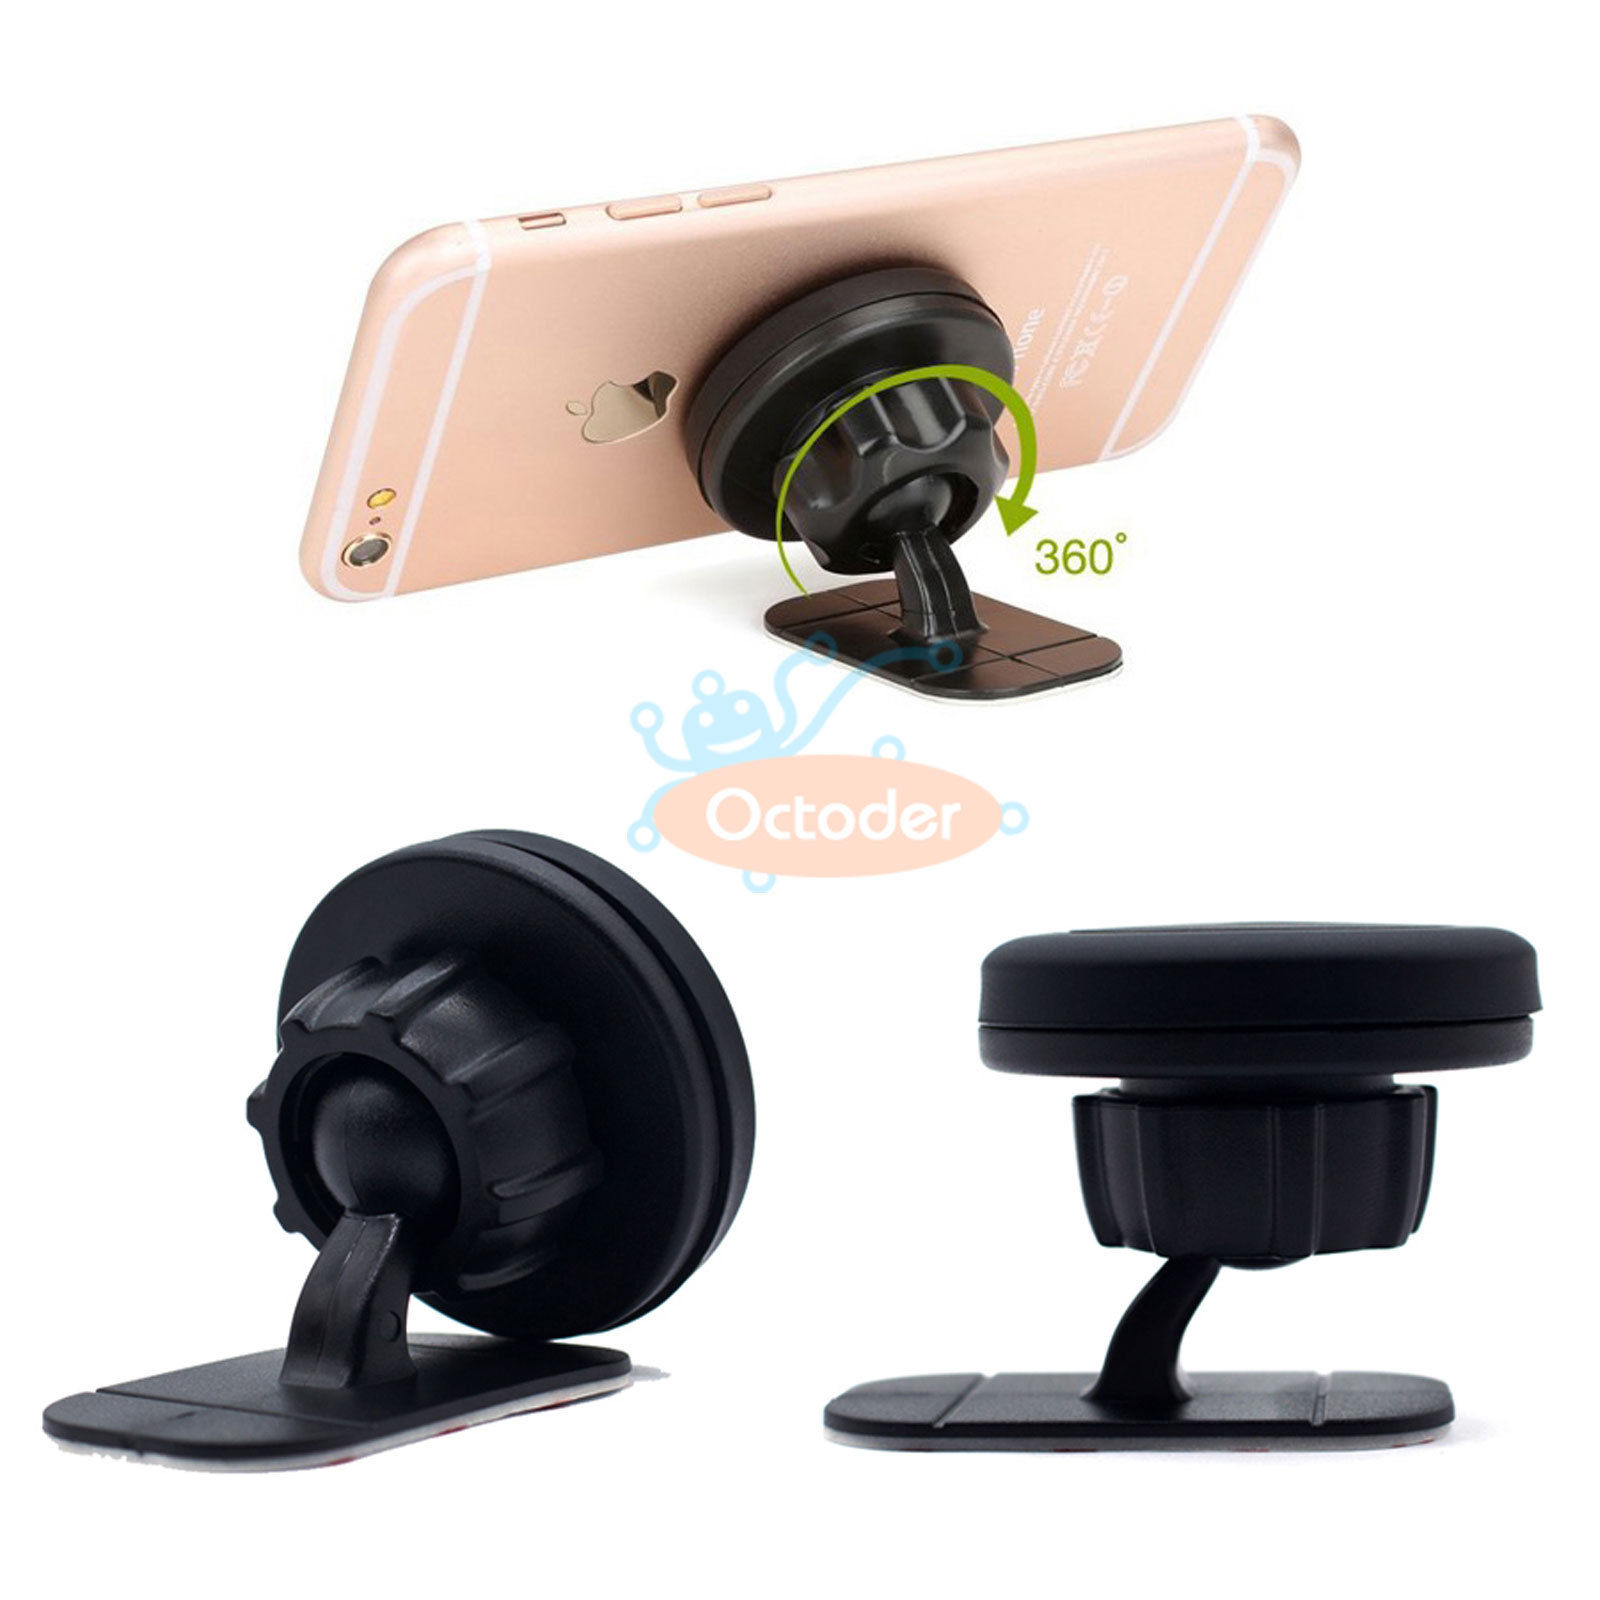 360° Universal Magnetic Car Mount Holder Cradle for iPhone ...